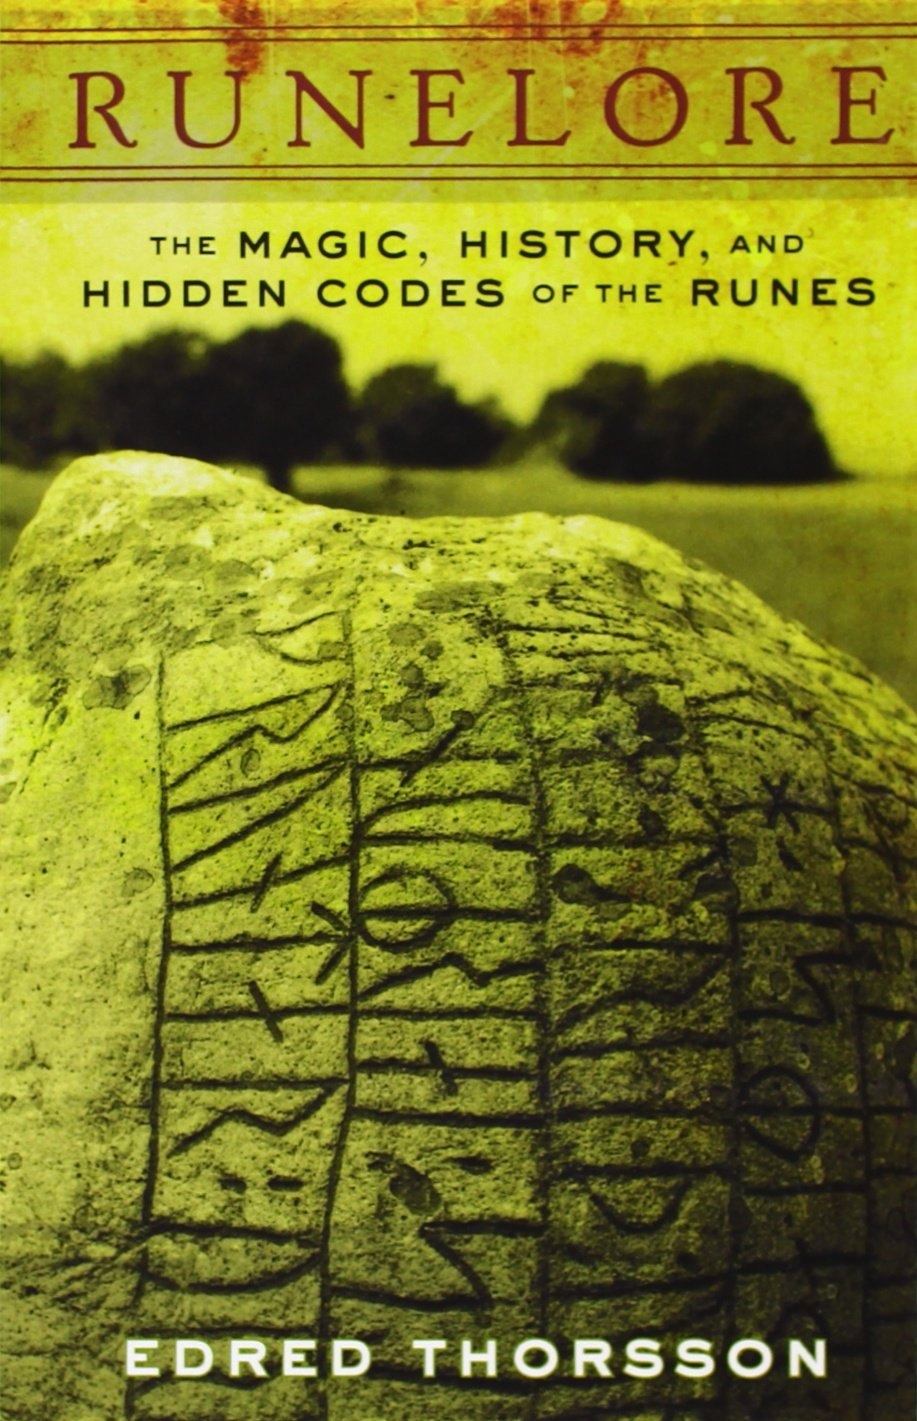 The 10 Best Books On The Runes